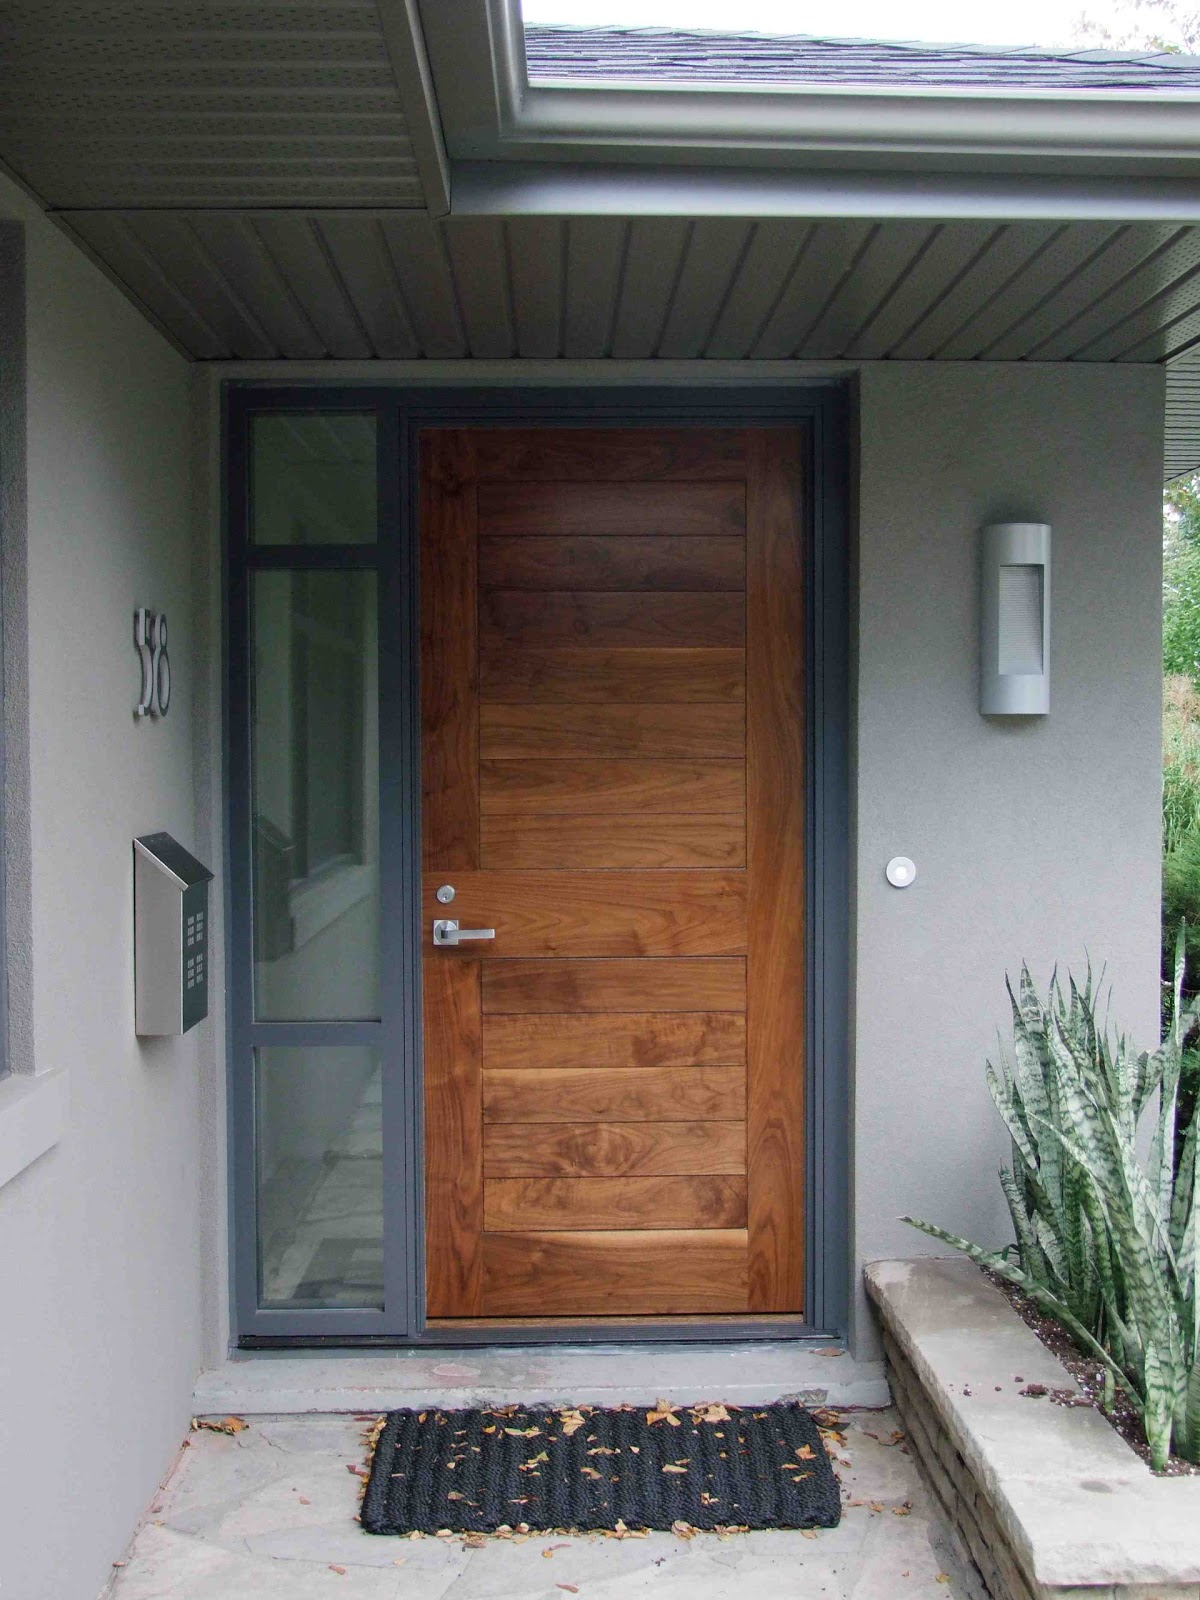 Creed 70 39 s bungalow makes a modern impression for Entrance door design for flats